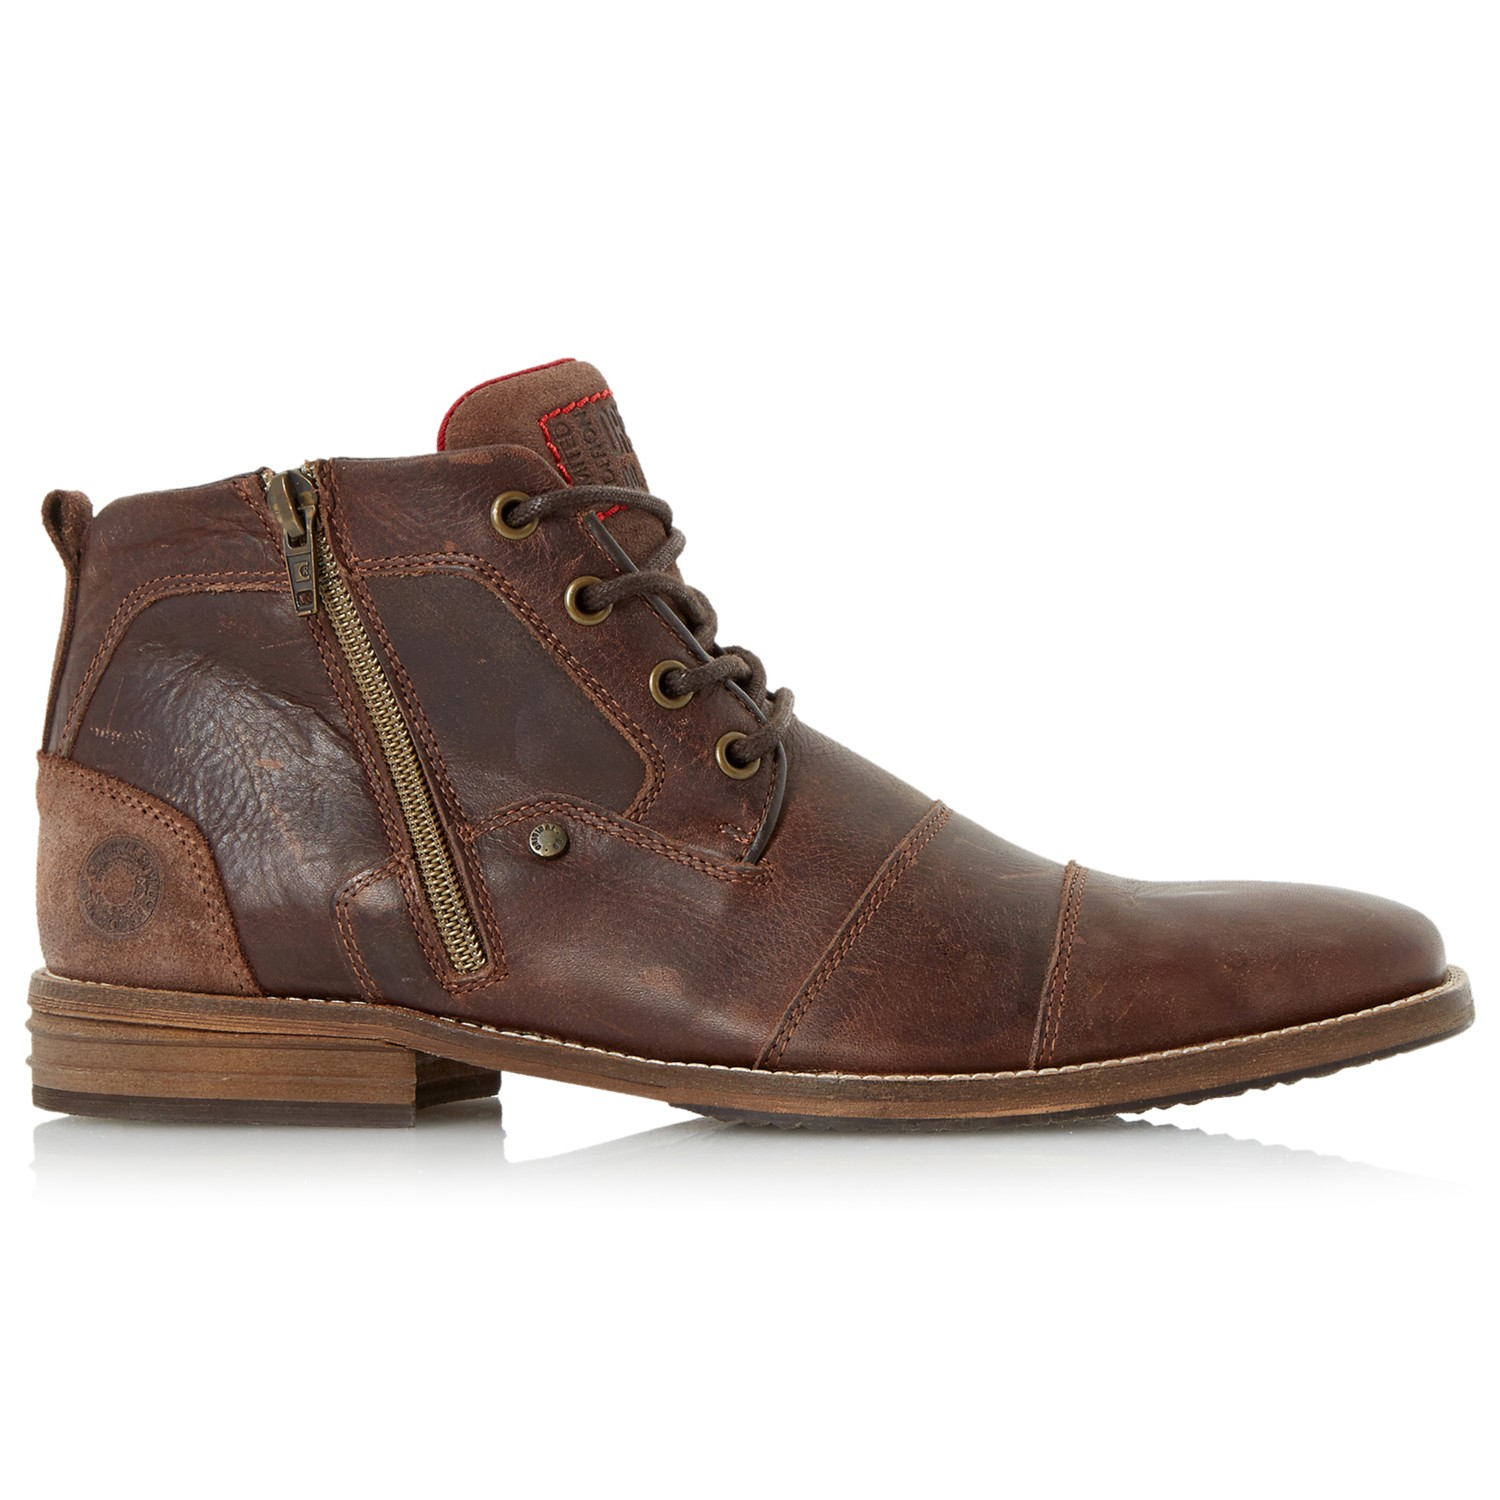 dune captain toe cap detail leather boots in brown